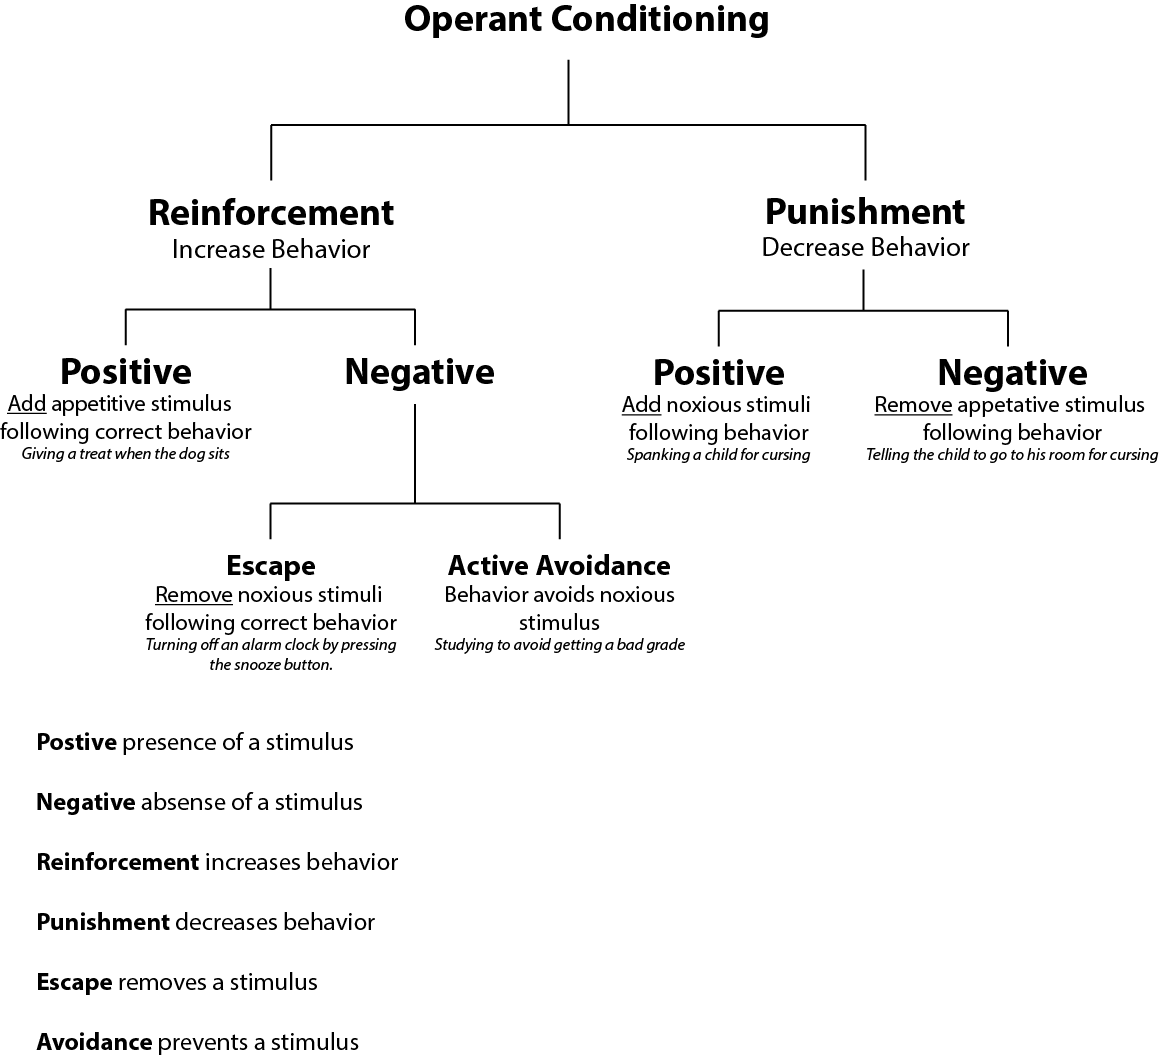 behavior modification upload org commons 1 16 operant conditioning diagram png